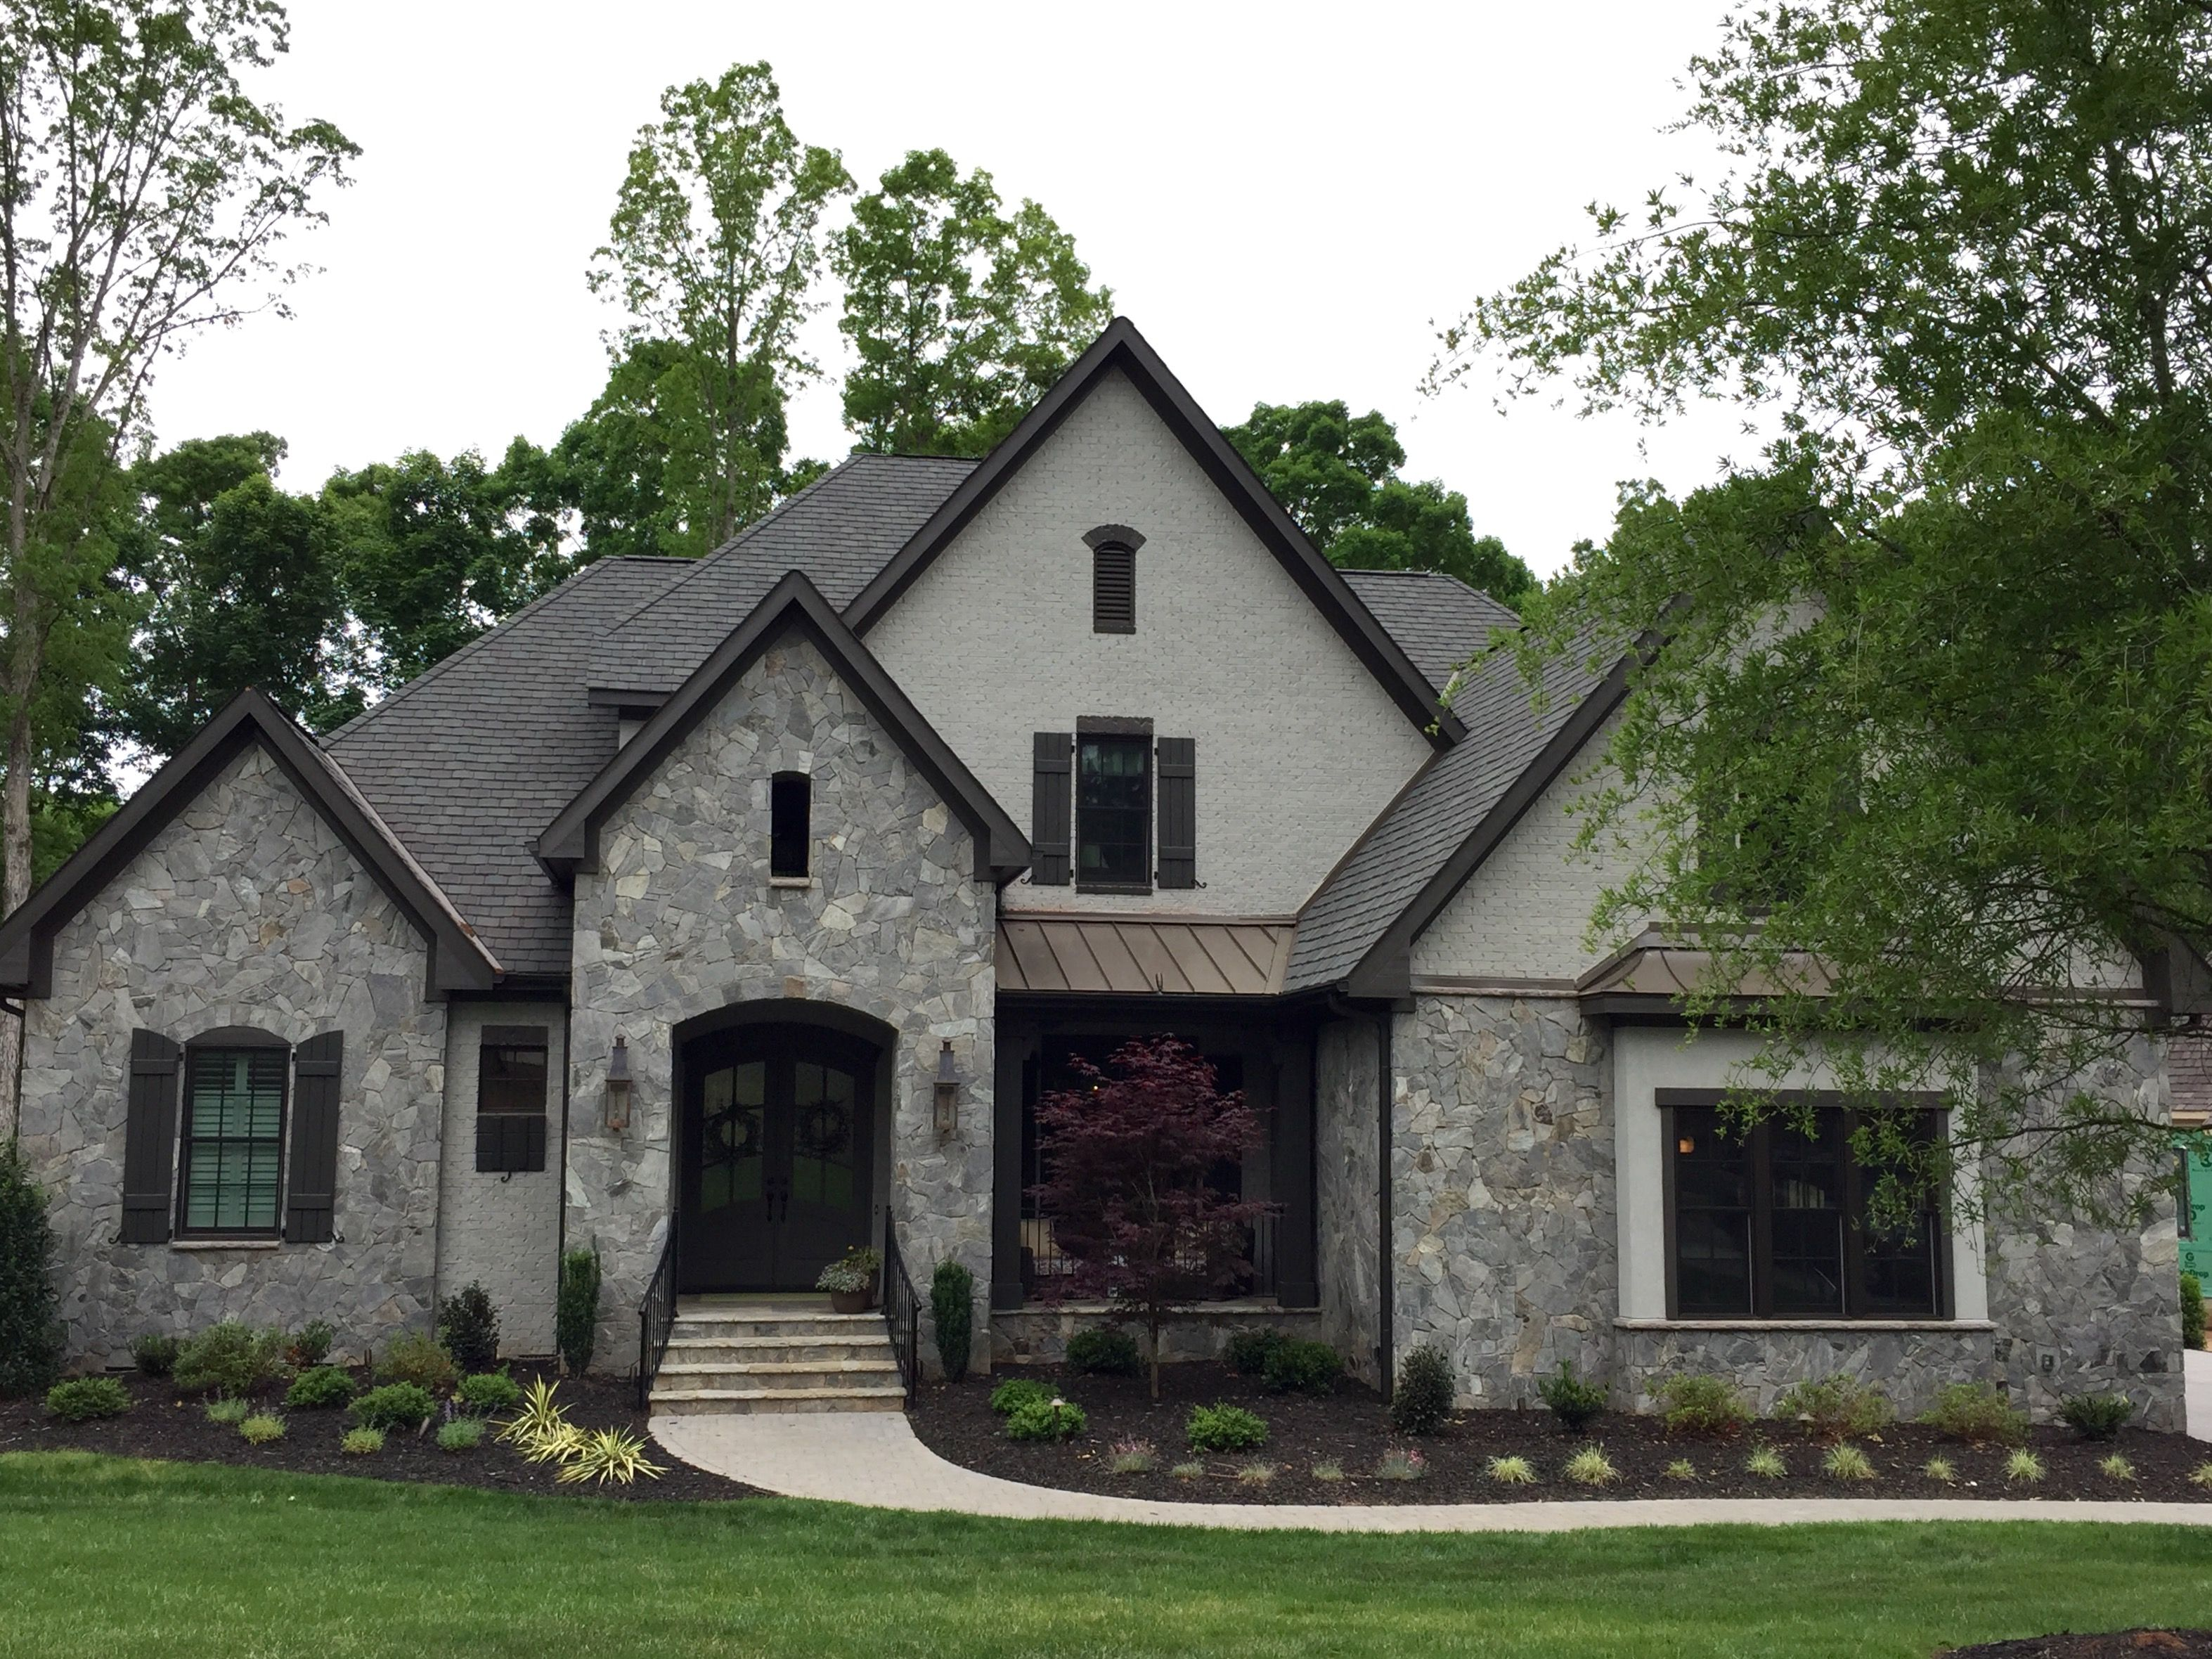 Arh plan asheville 1131f exterior 42 stone dove gray for Mixing brick and stone exterior